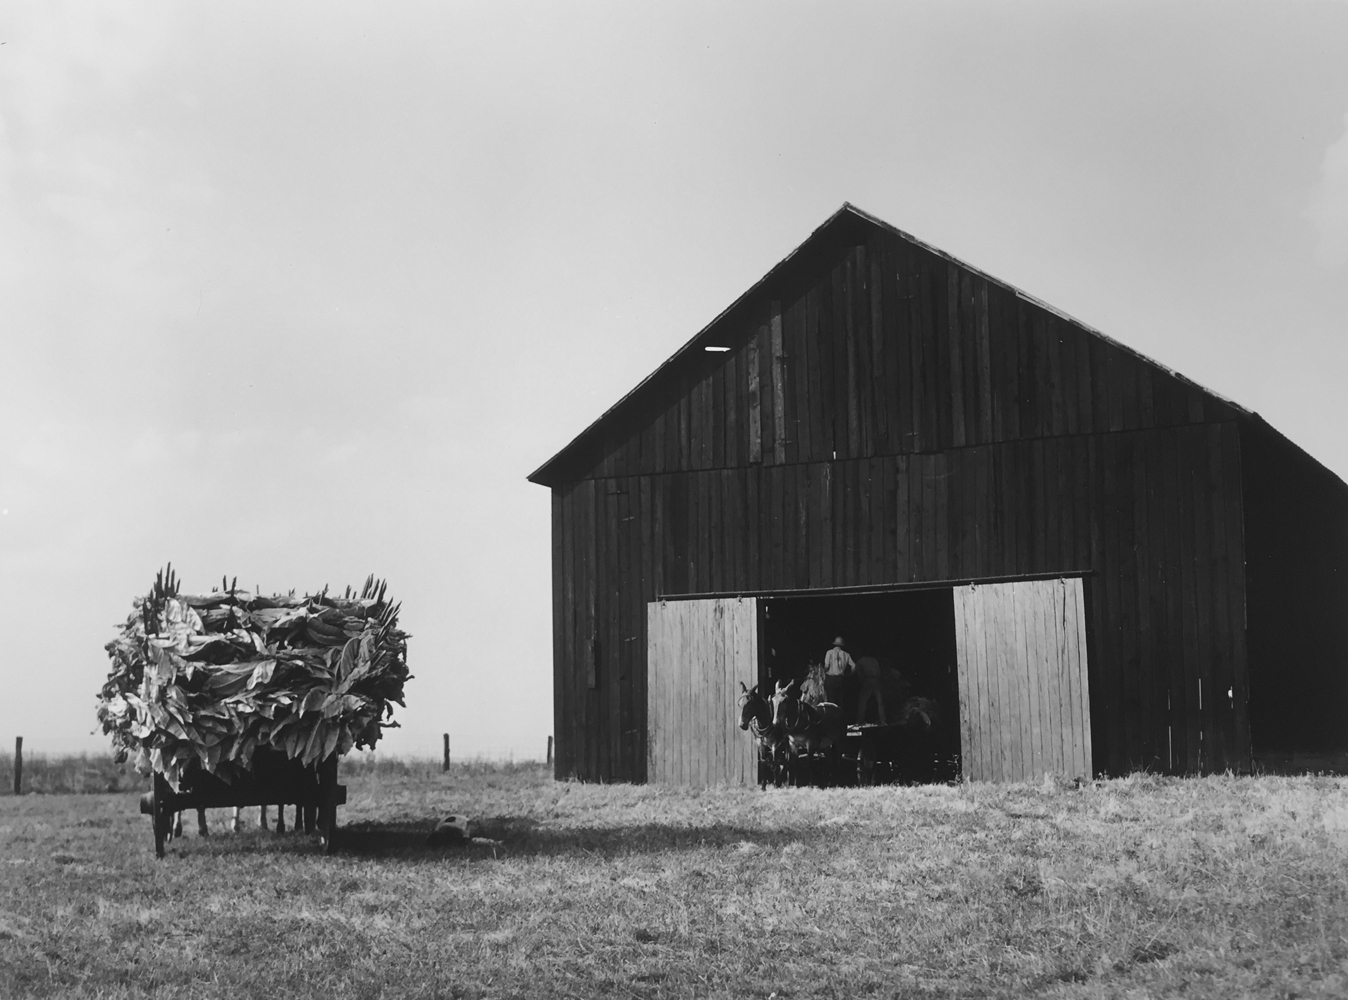 Marion Post Wolcott, Wagons deliver tobacco to a barn on the farm of Russell Spears, New Lexington, Kentucky, 1940, gelatin silver print, 11 x 14 inches, price on request